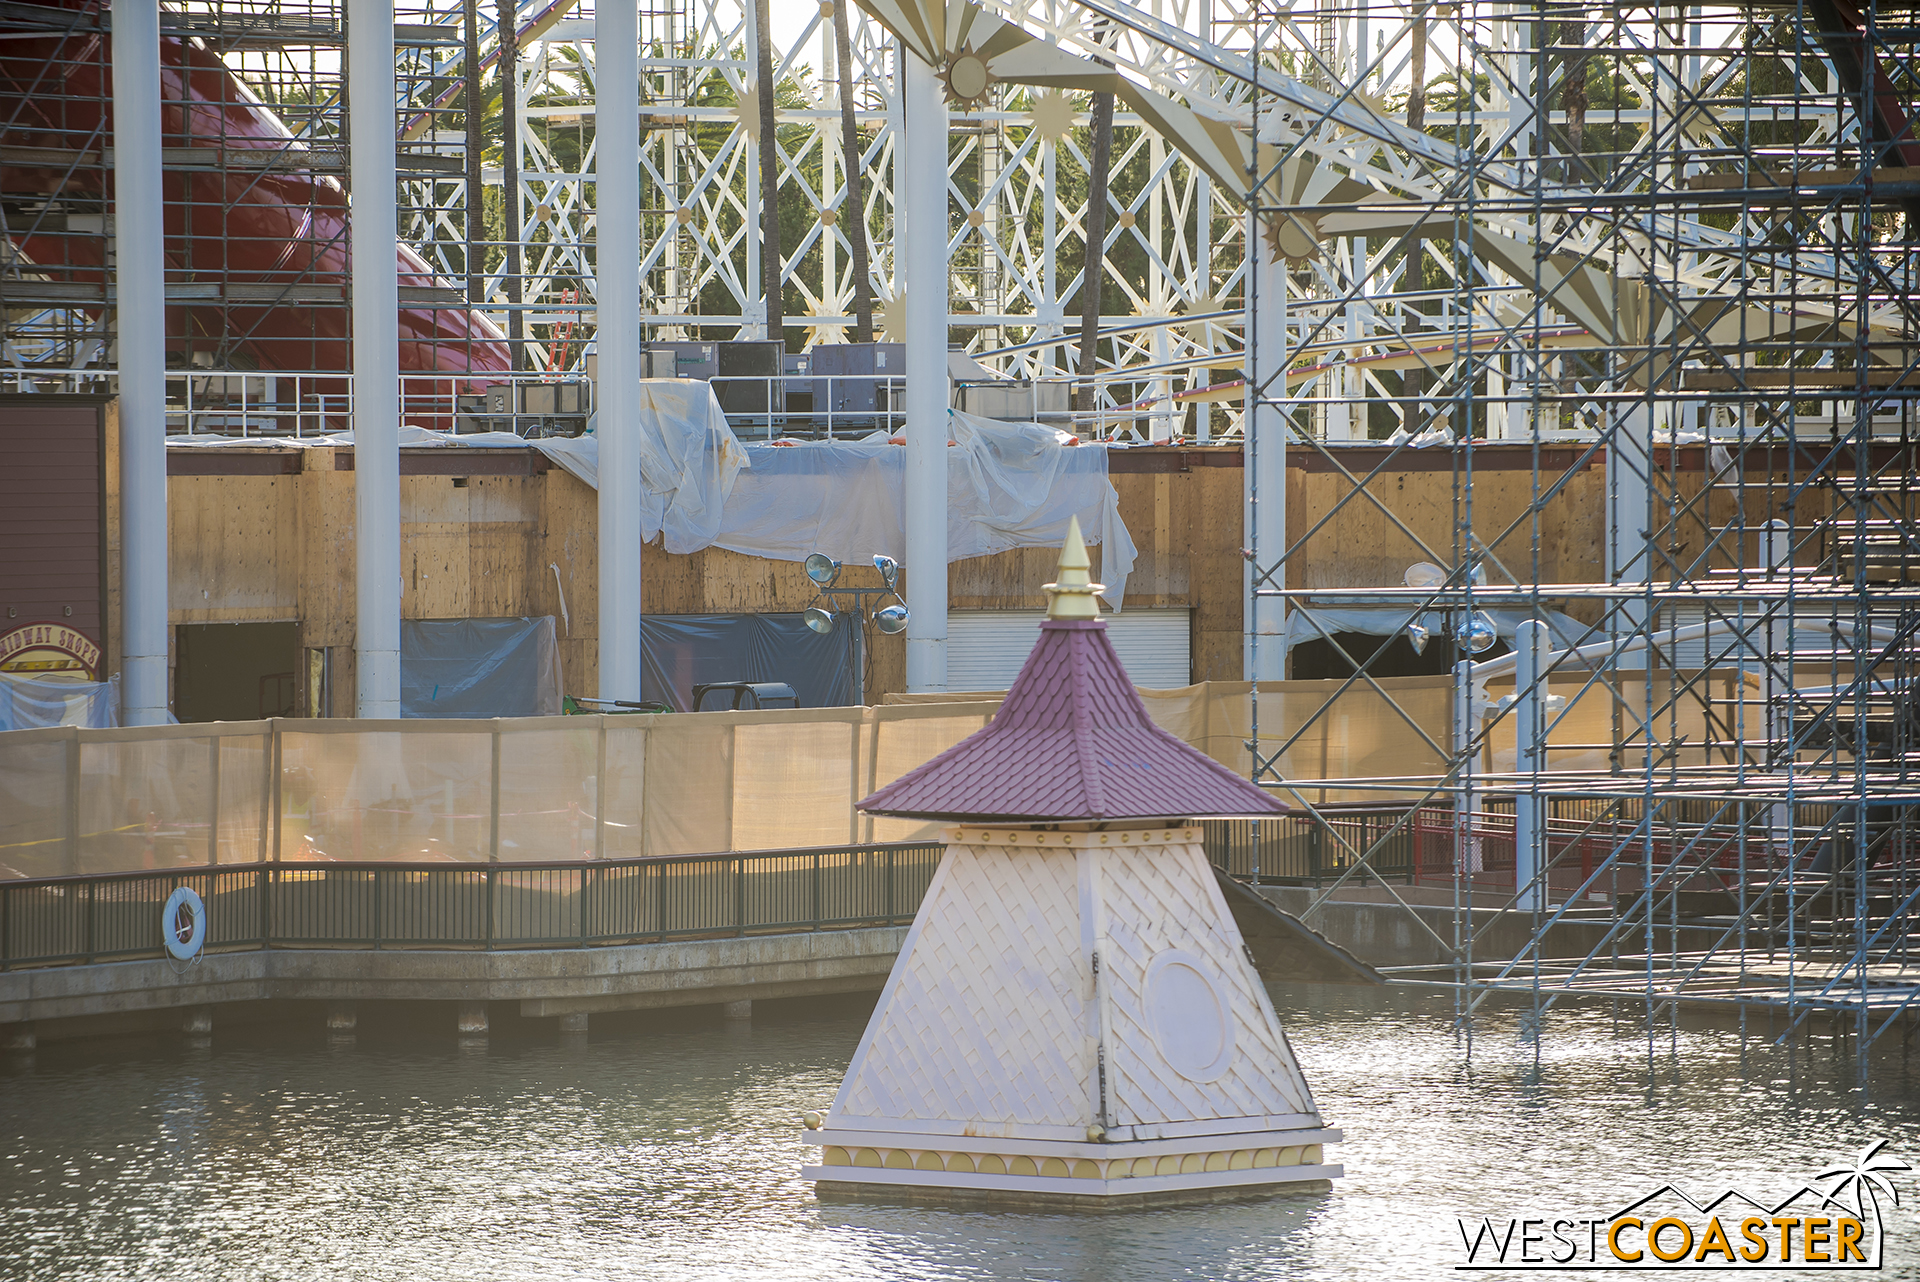 But the facades that had retained the carnival seaside park aesthetic have been removed and will be replaced by something that will better fit with the unchanged facades.